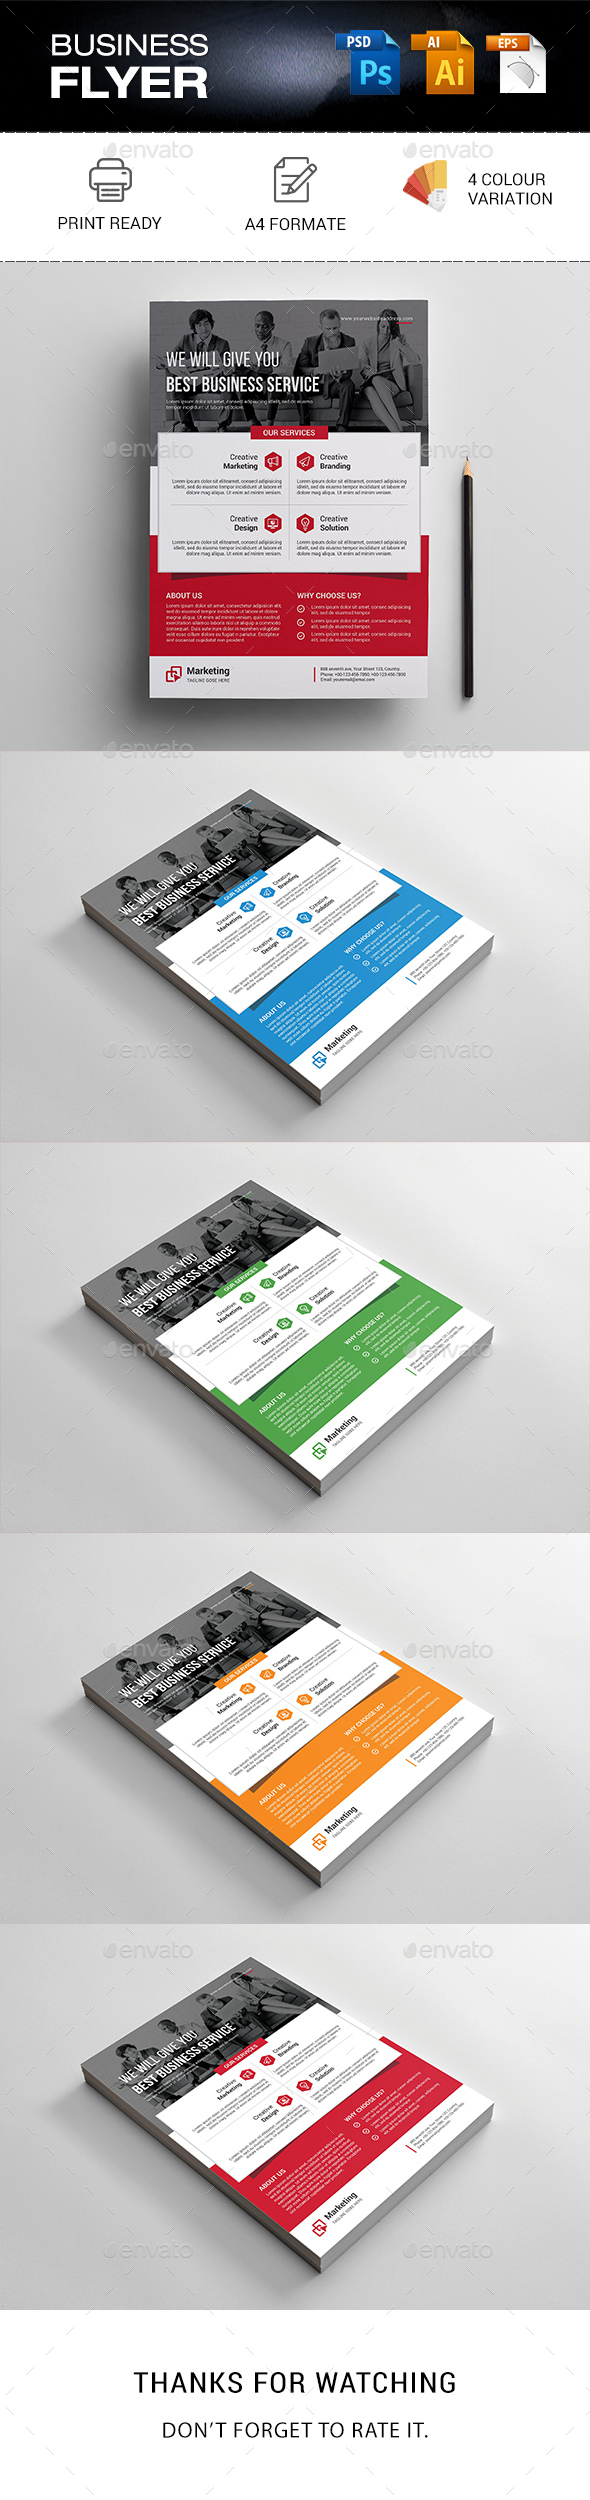 GraphicRiver Business Flyer 20970320